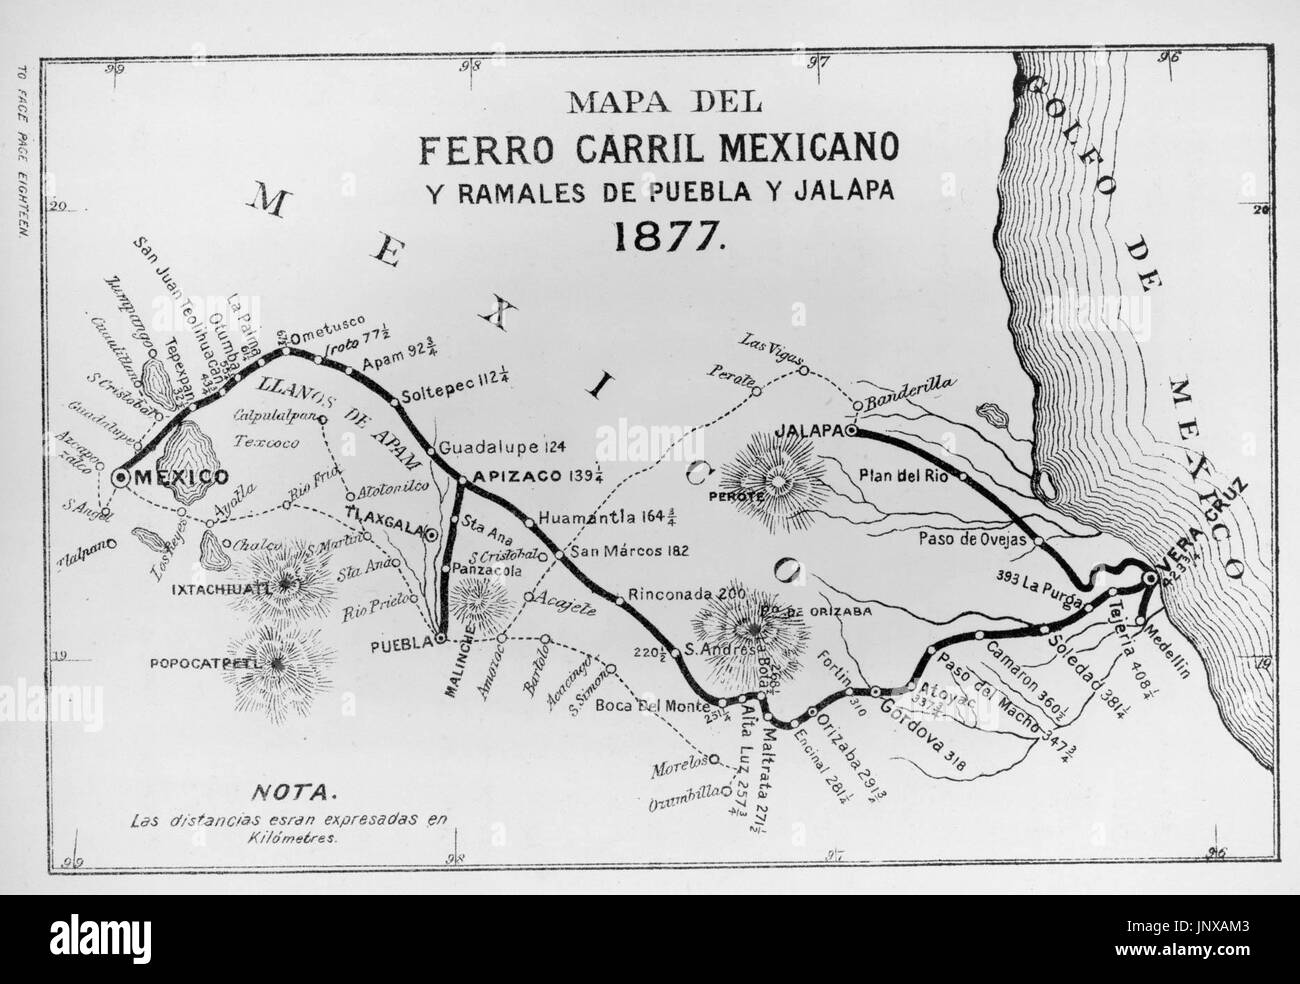 Map of first Mexican rail line between Veracruz and Mexico City - Stock Image